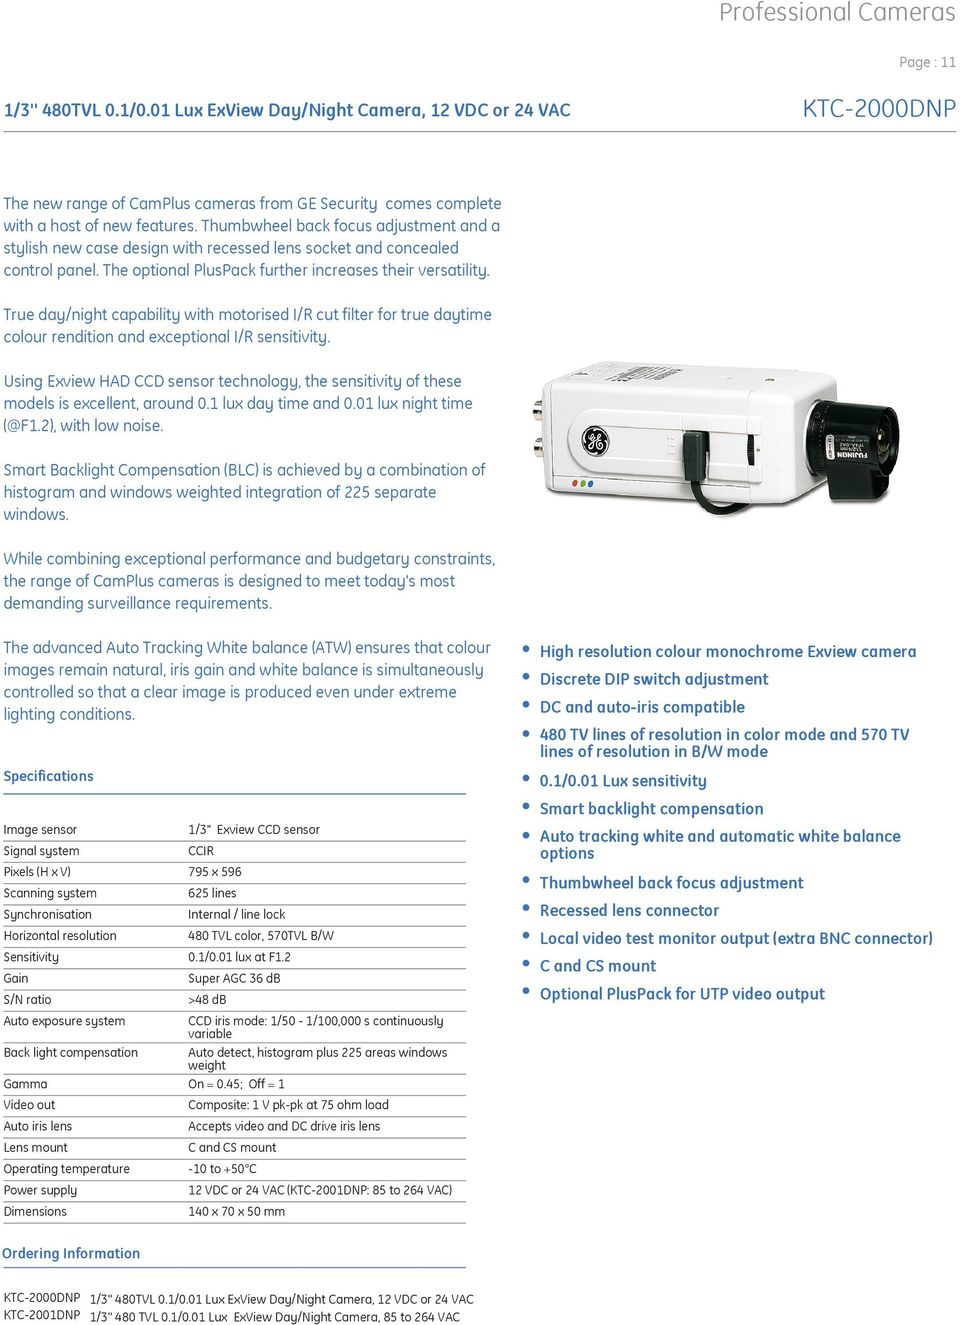 Multiplex 12mm Gamma Ge Security Cctv Product Catalogue Pdf